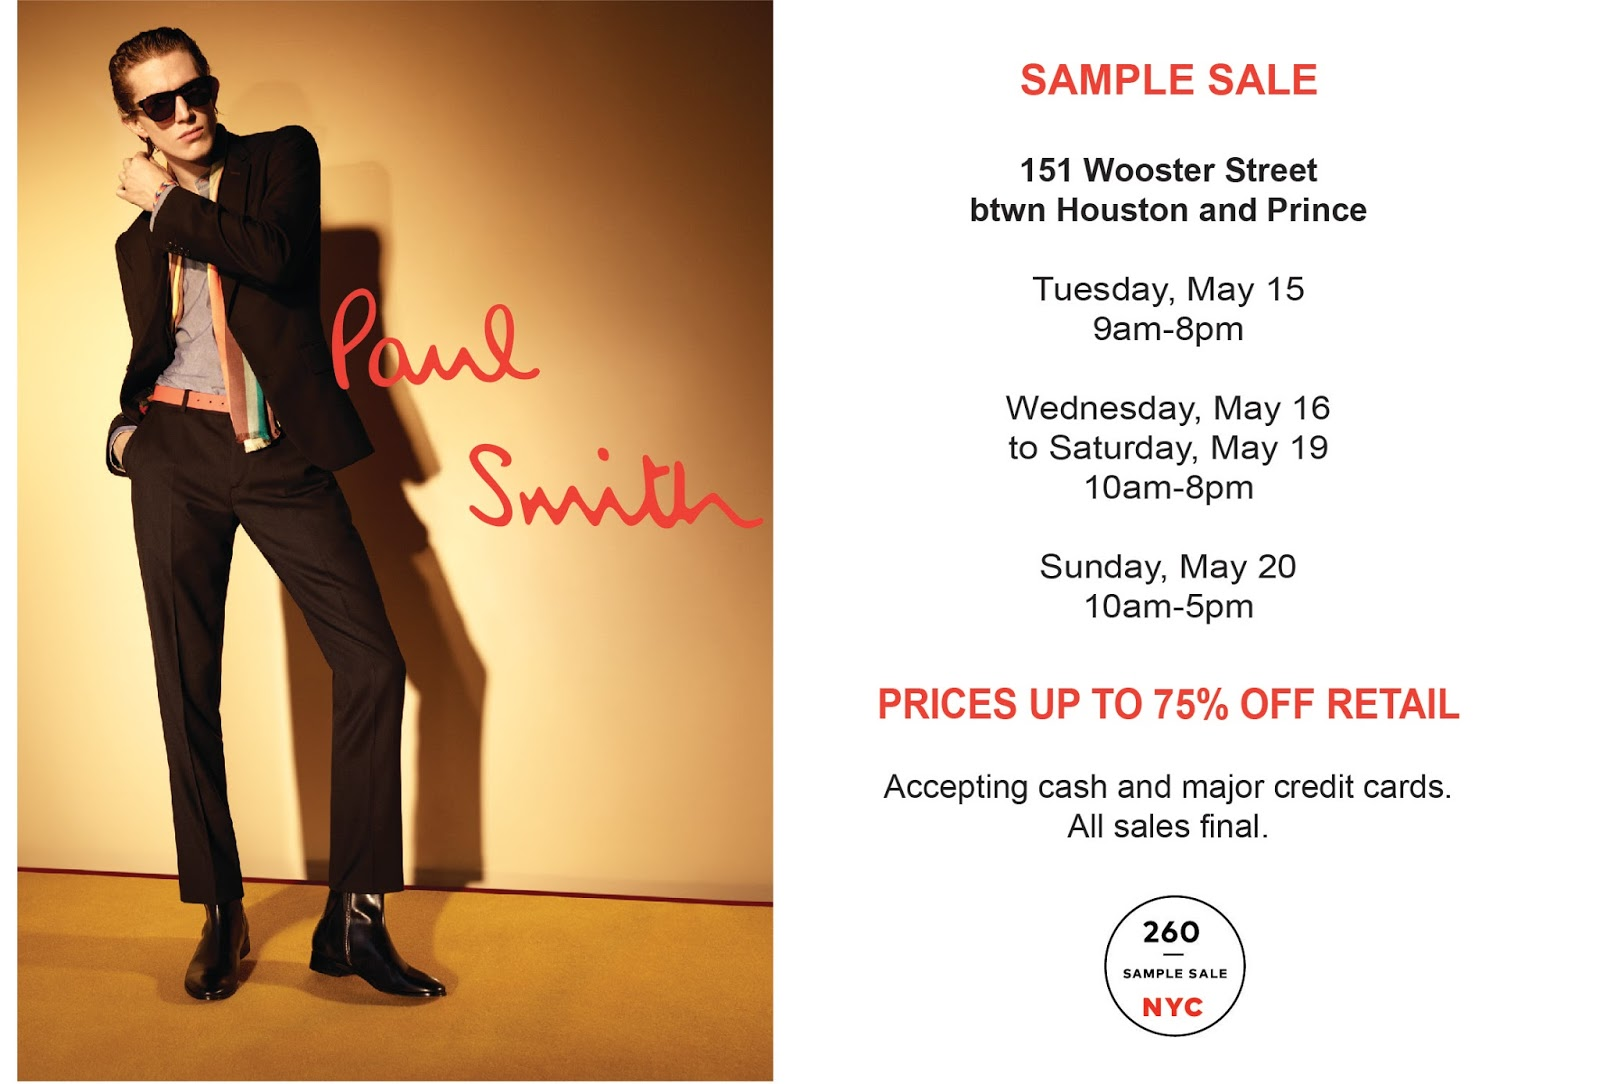 Mizhattan sensible living with style: *sample sale* paulish up.